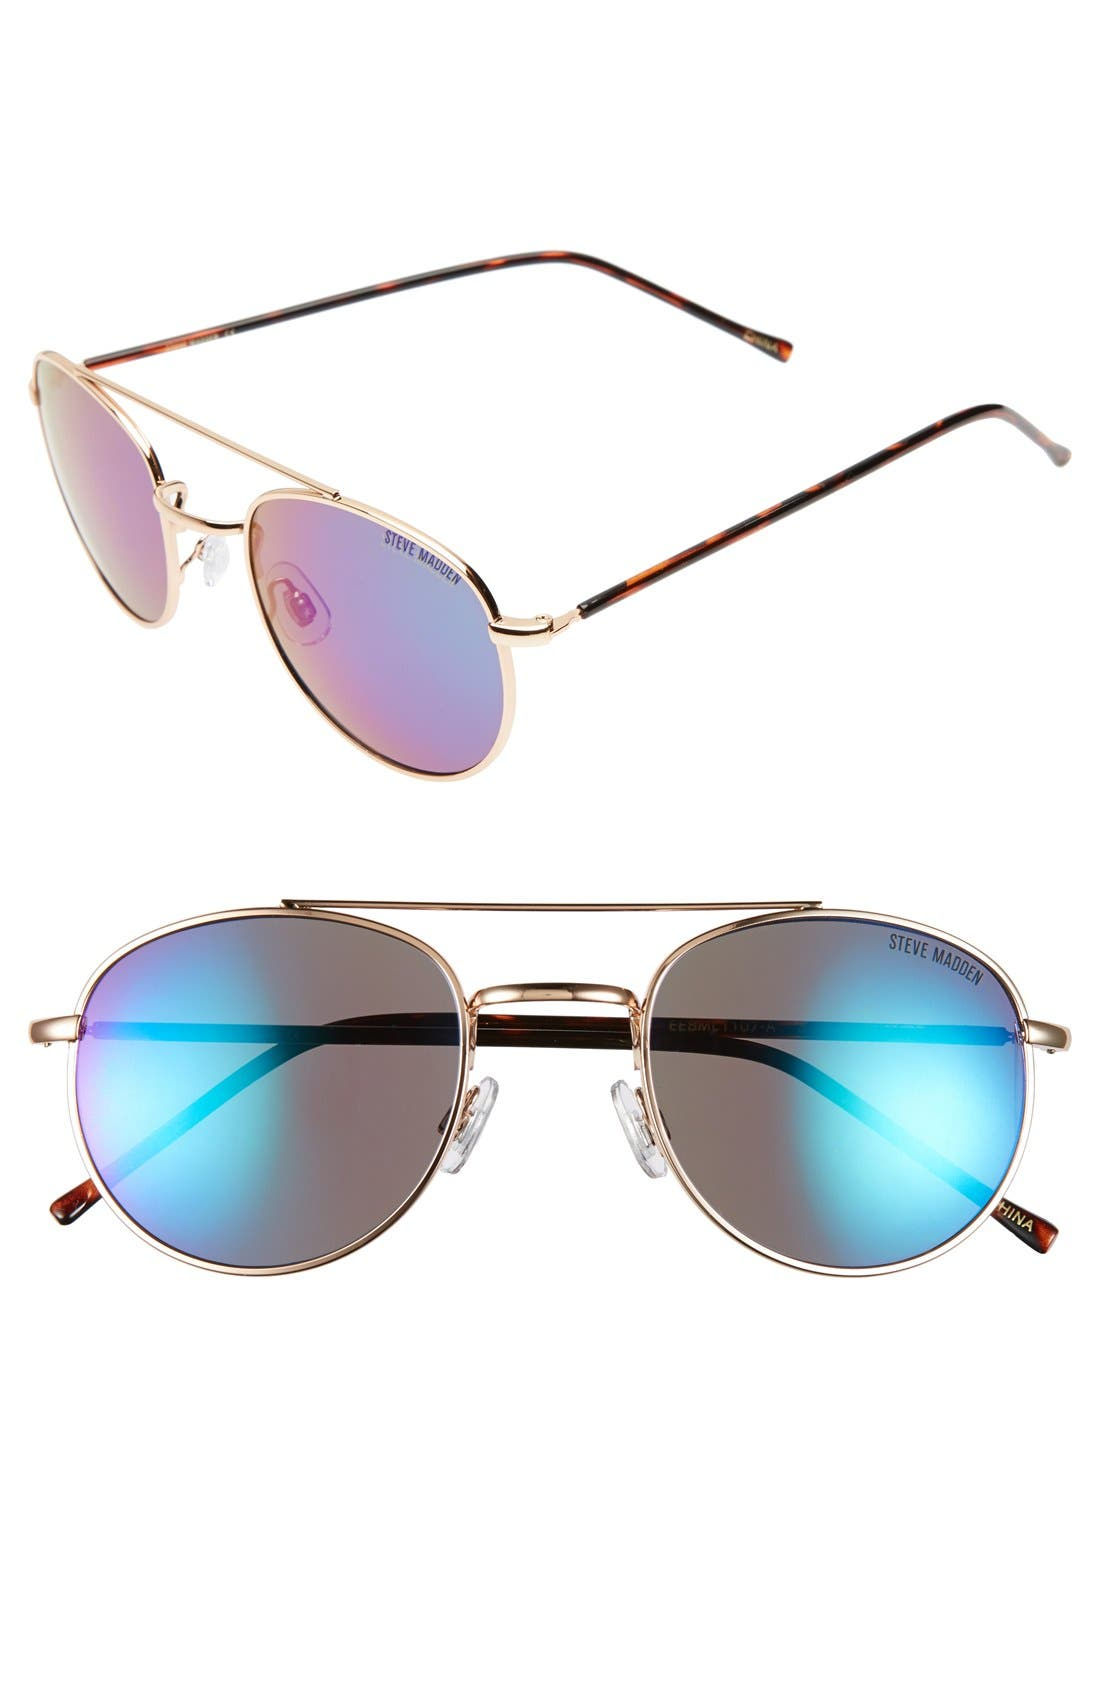 Alternate Image 1 Selected - Steve Madden 52mm Mirror Lens Aviator Sunglasses